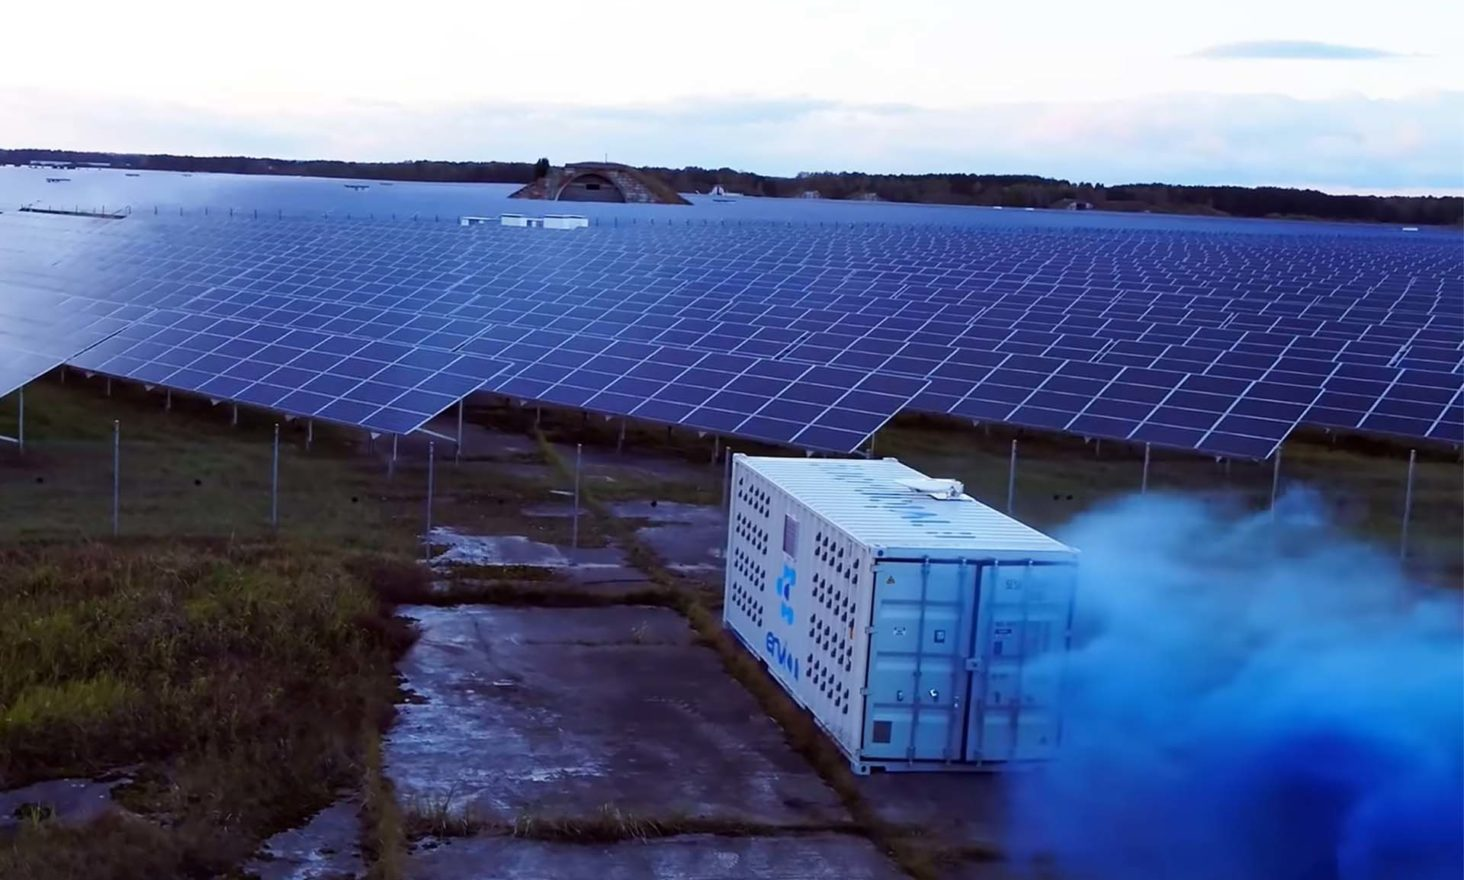 How Envion Mobile Mining Units Can Reduce the Industry's Carbon Footprint